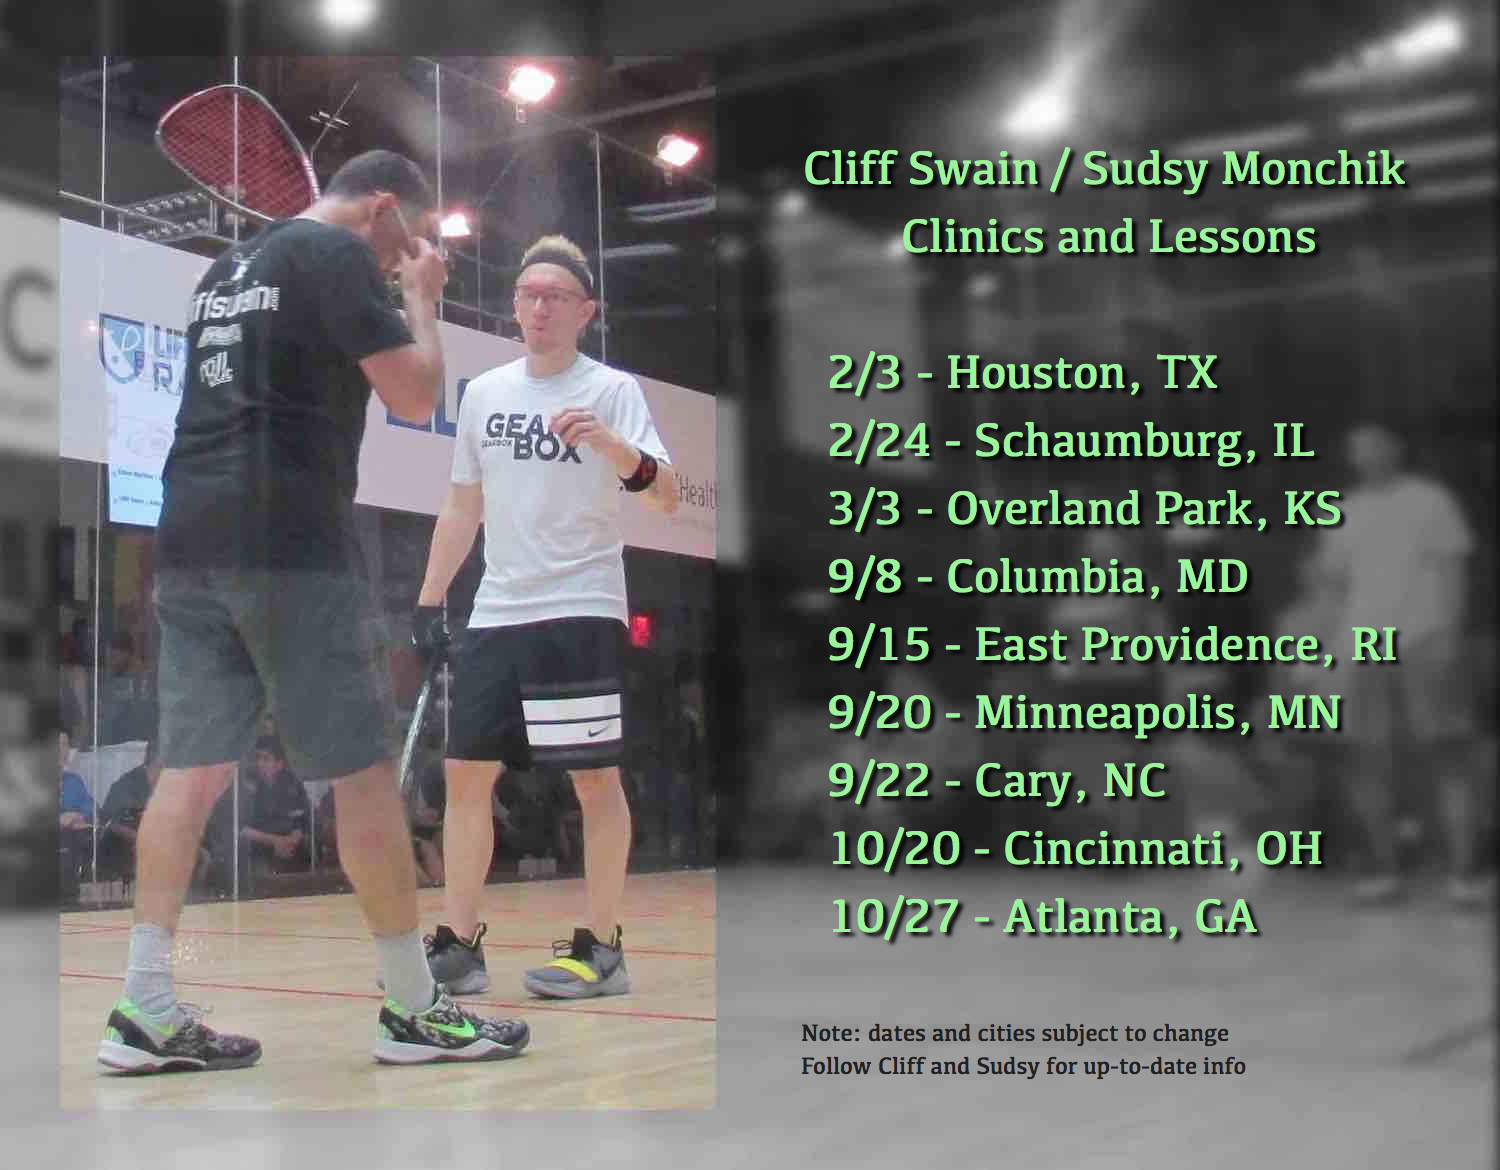 Cliff Swain and Sudsy Monchik Racquetball Clinics